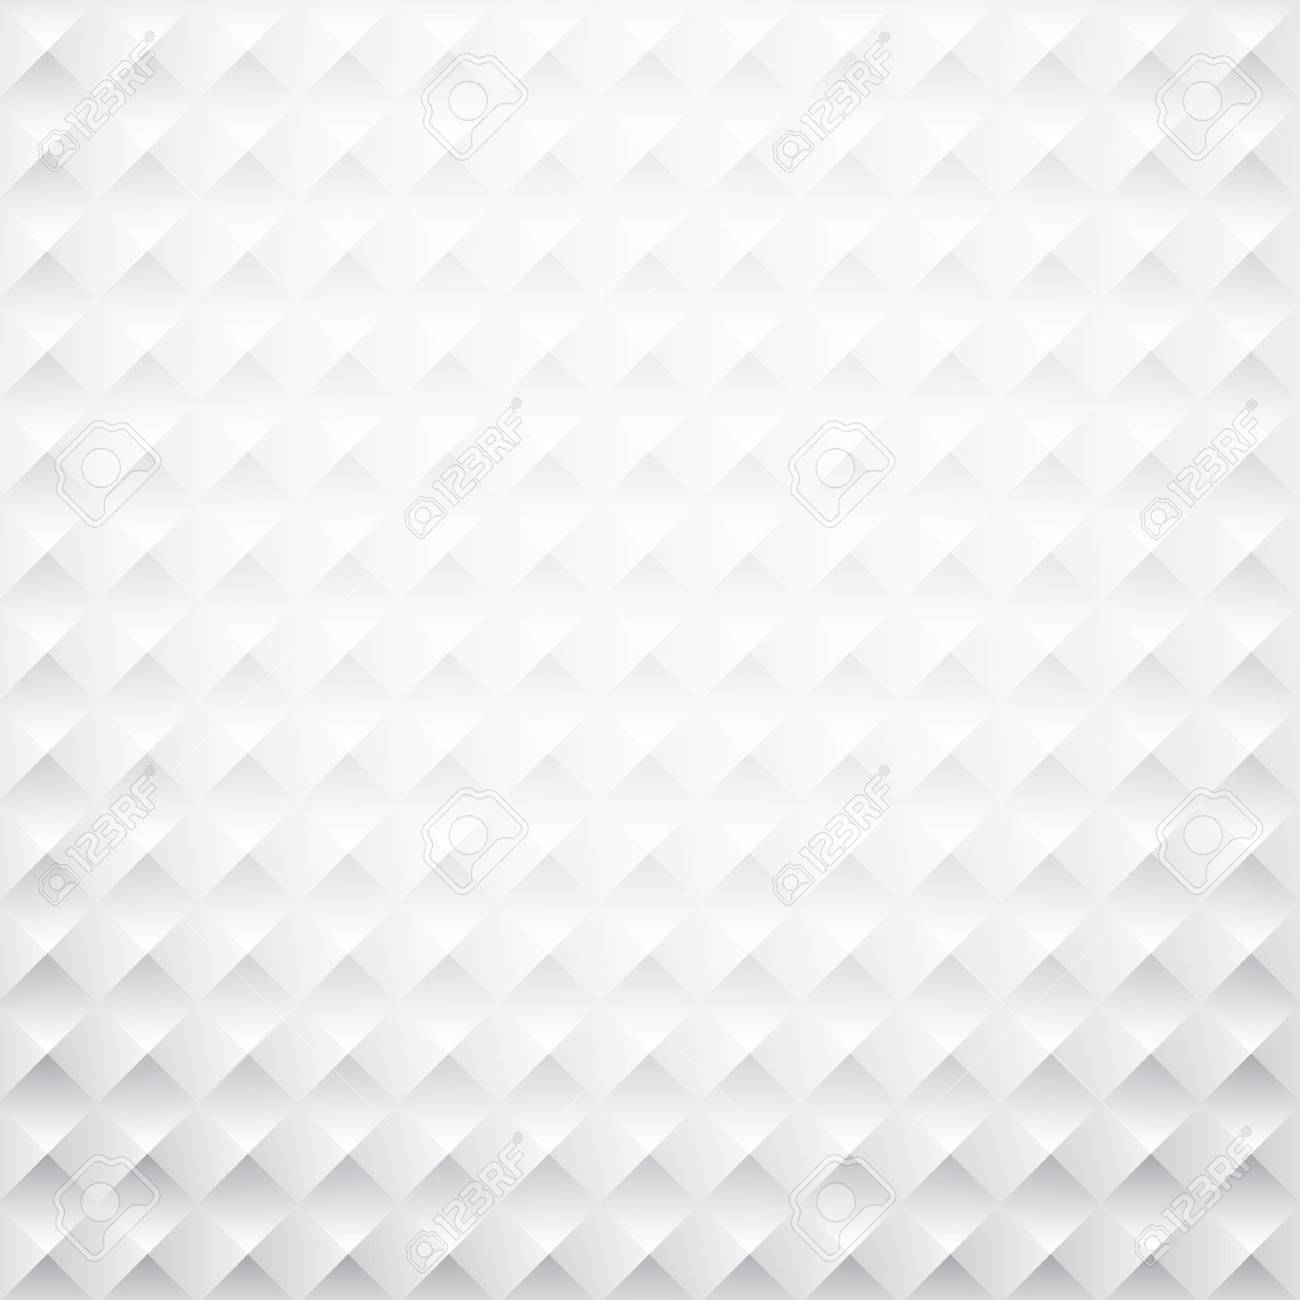 White texture pattern. Clear abstract design. Stock Vector - 20840870